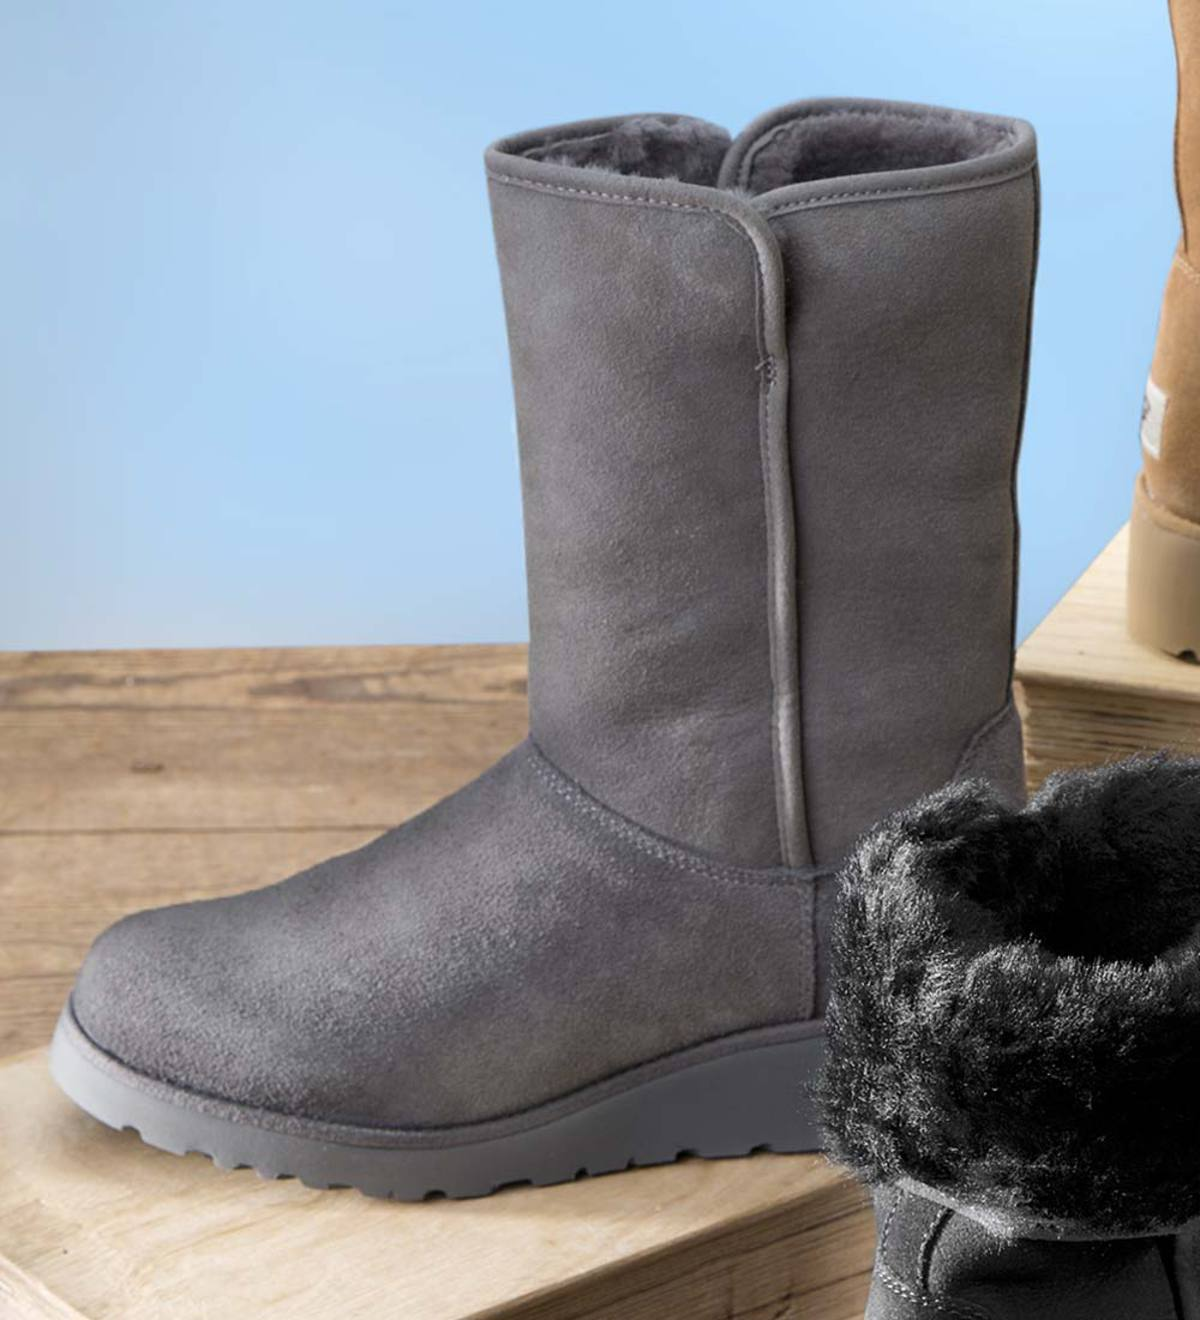 52f34615b89a8 UGG Women s Amie Boot - Grey - Size 8